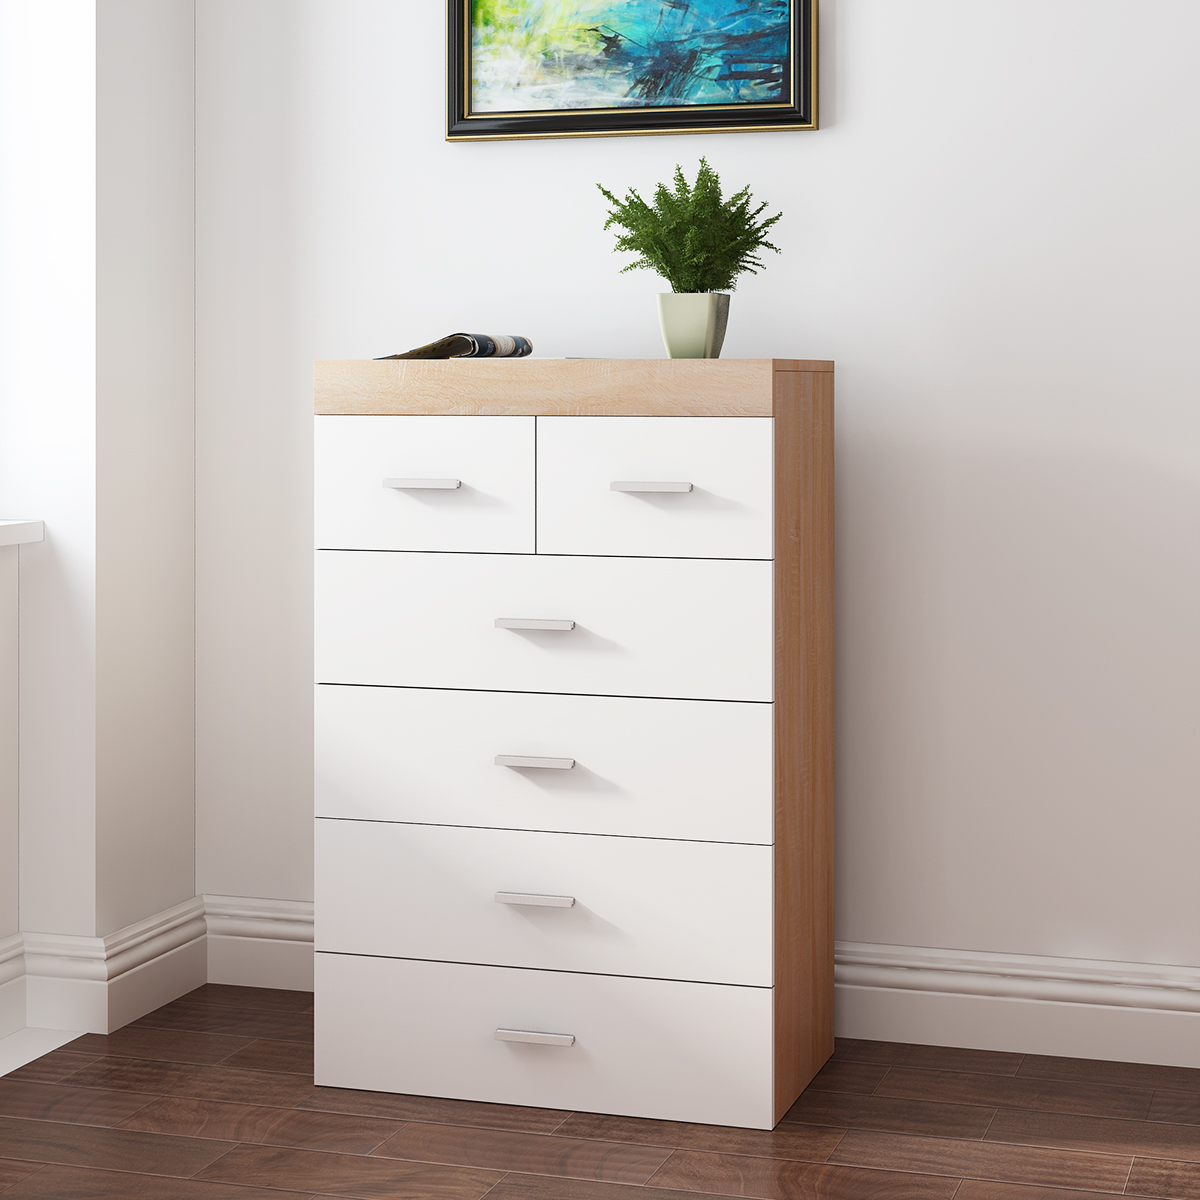 Panana White & Oak Wooden Chest of 5 /6 Drawers Bedroom Storage Furniture Clothes / Shoes organizer Box Free StandPanana White & Oak Wooden Chest of 5 /6 Drawers Bedroom Storage Furniture Clothes / Shoes organizer Box Free Stand